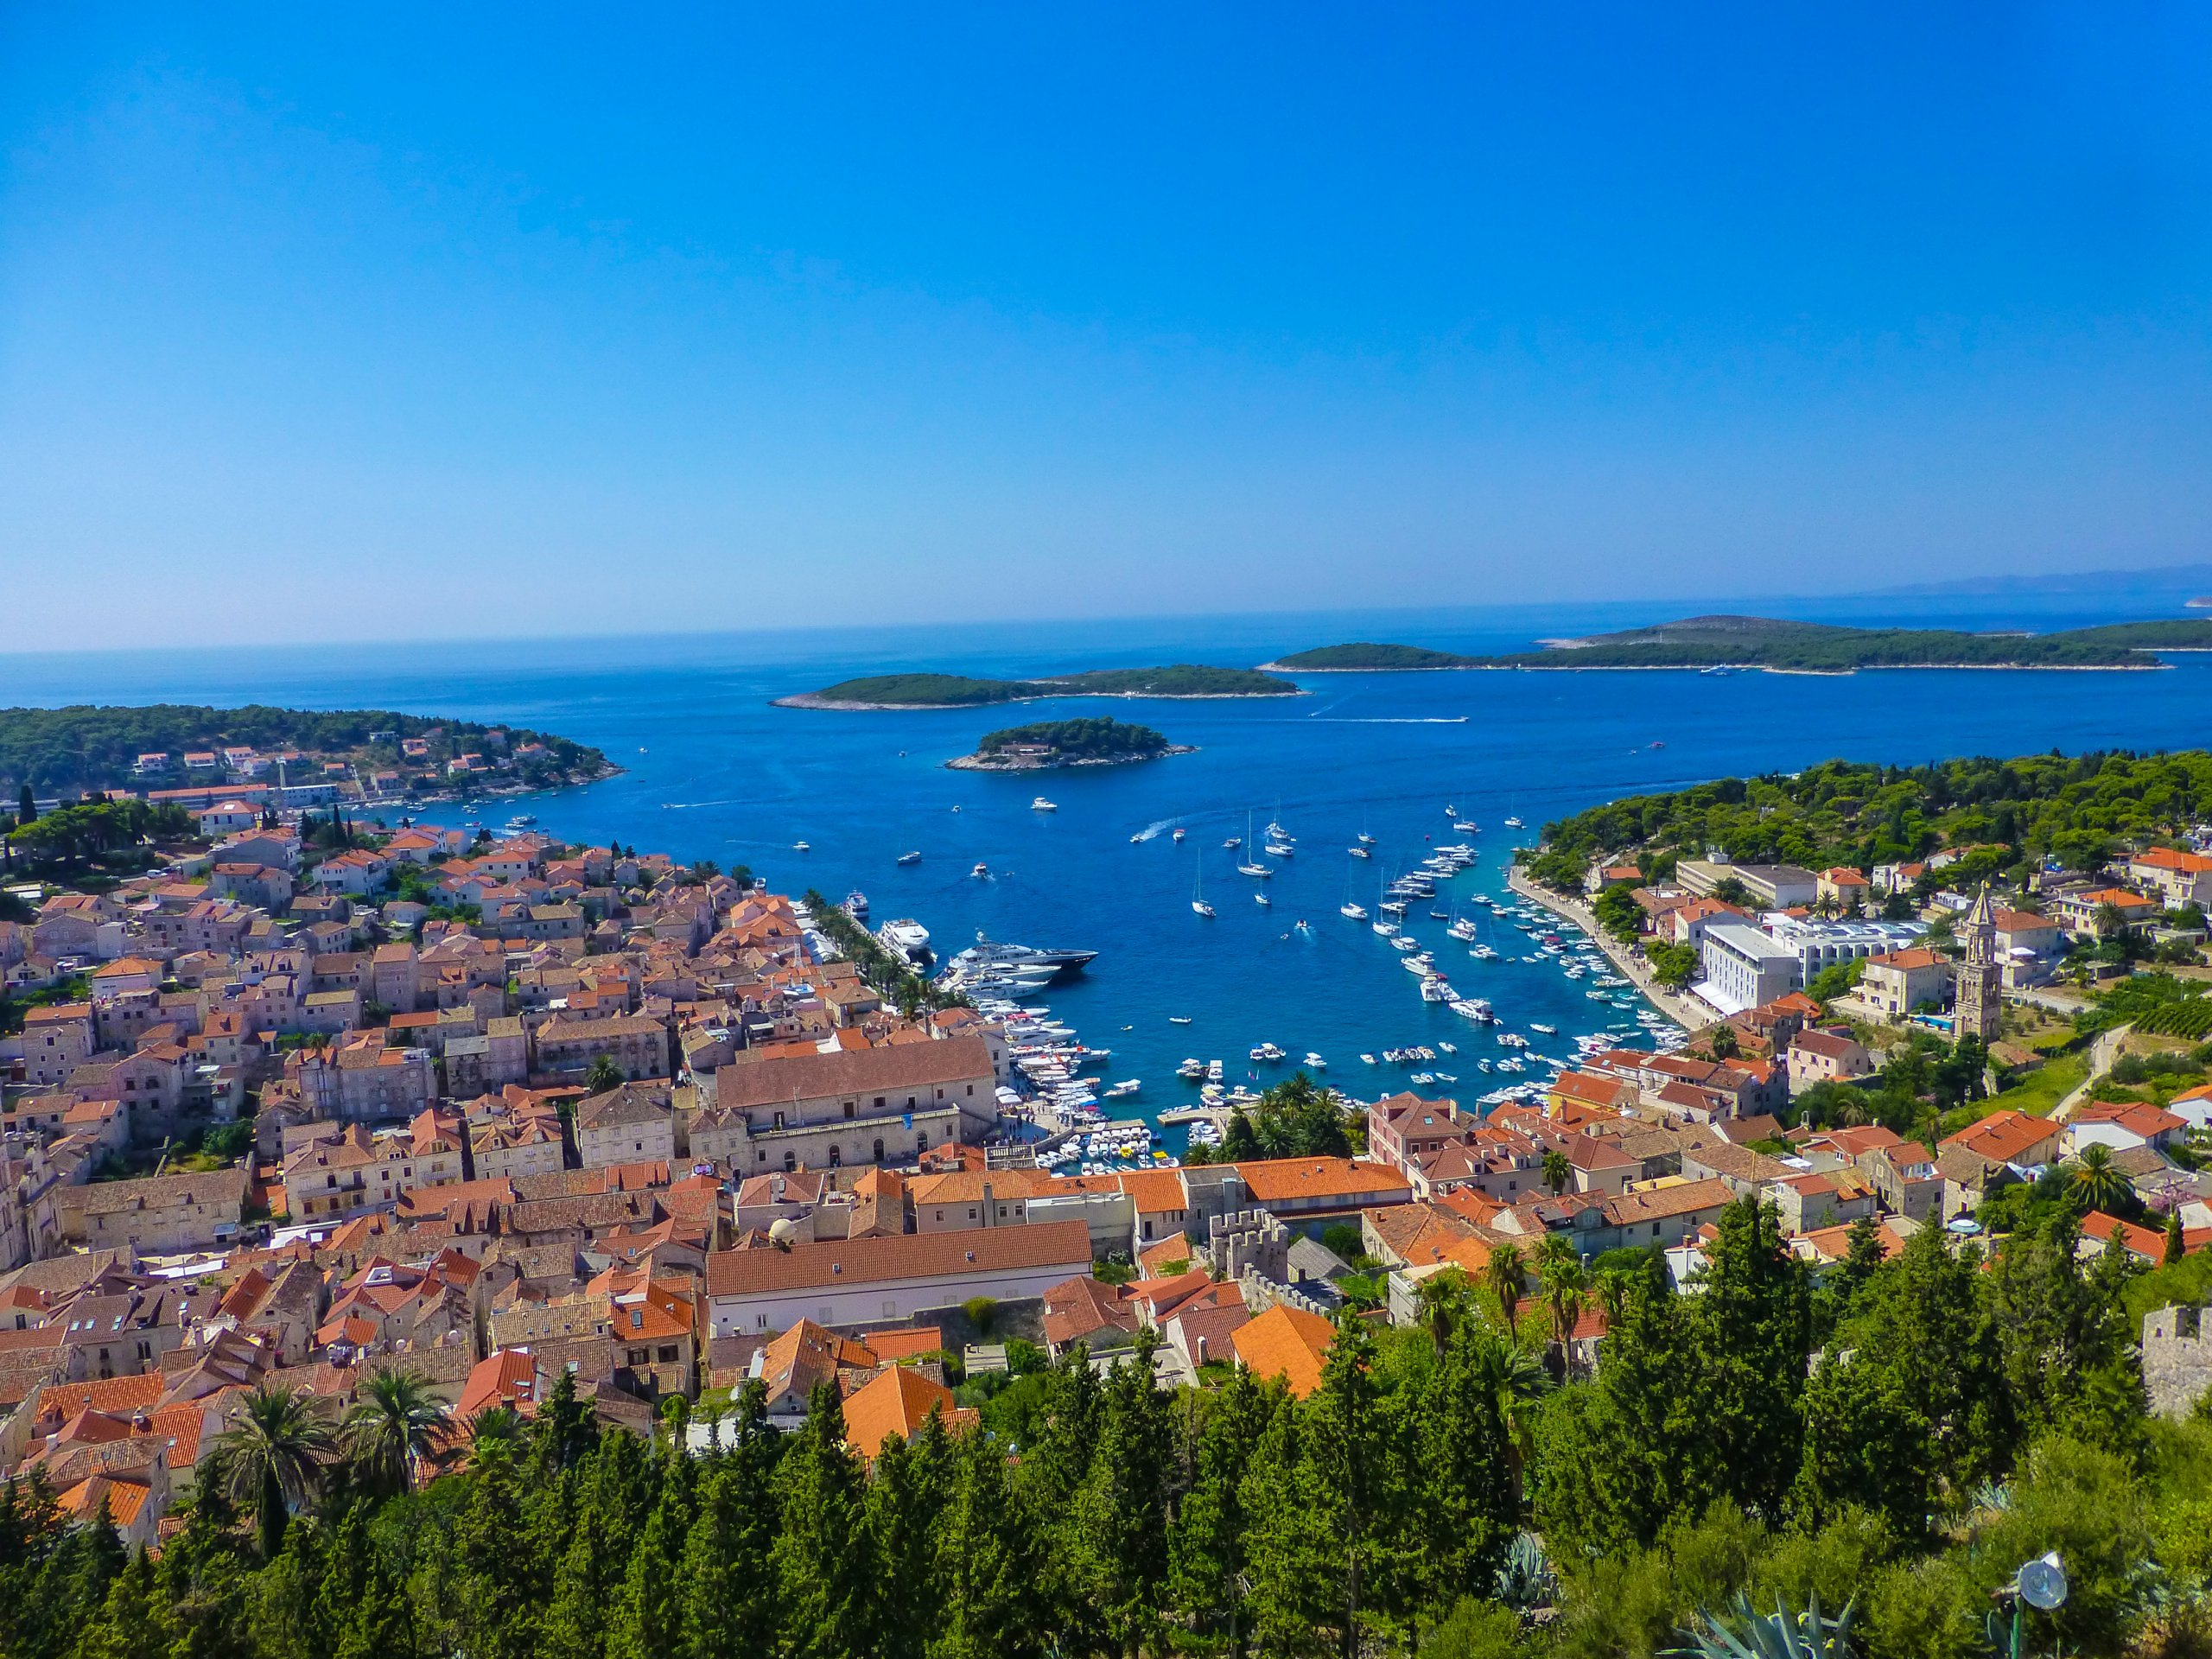 One Day in Hvar, Croatia